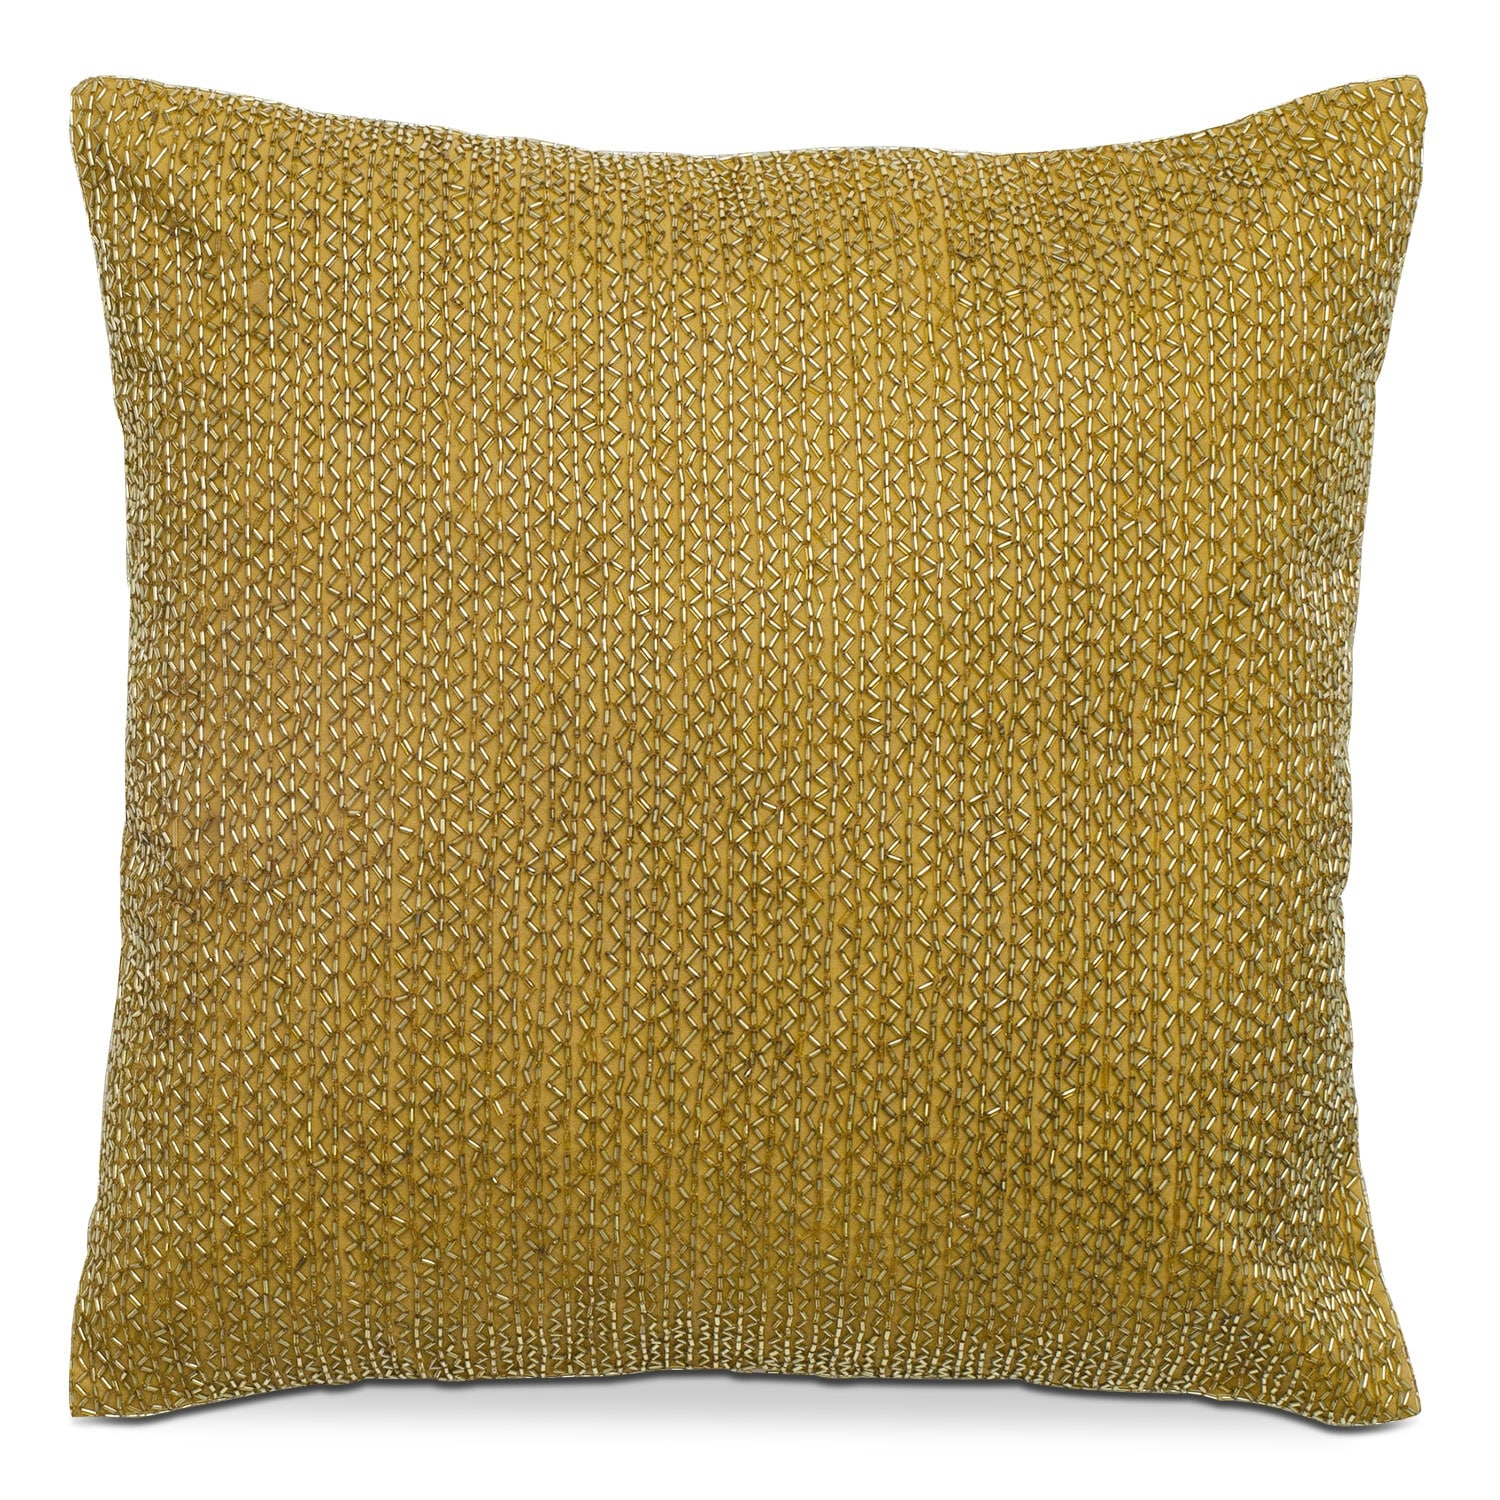 Tabby Decorative Pillow